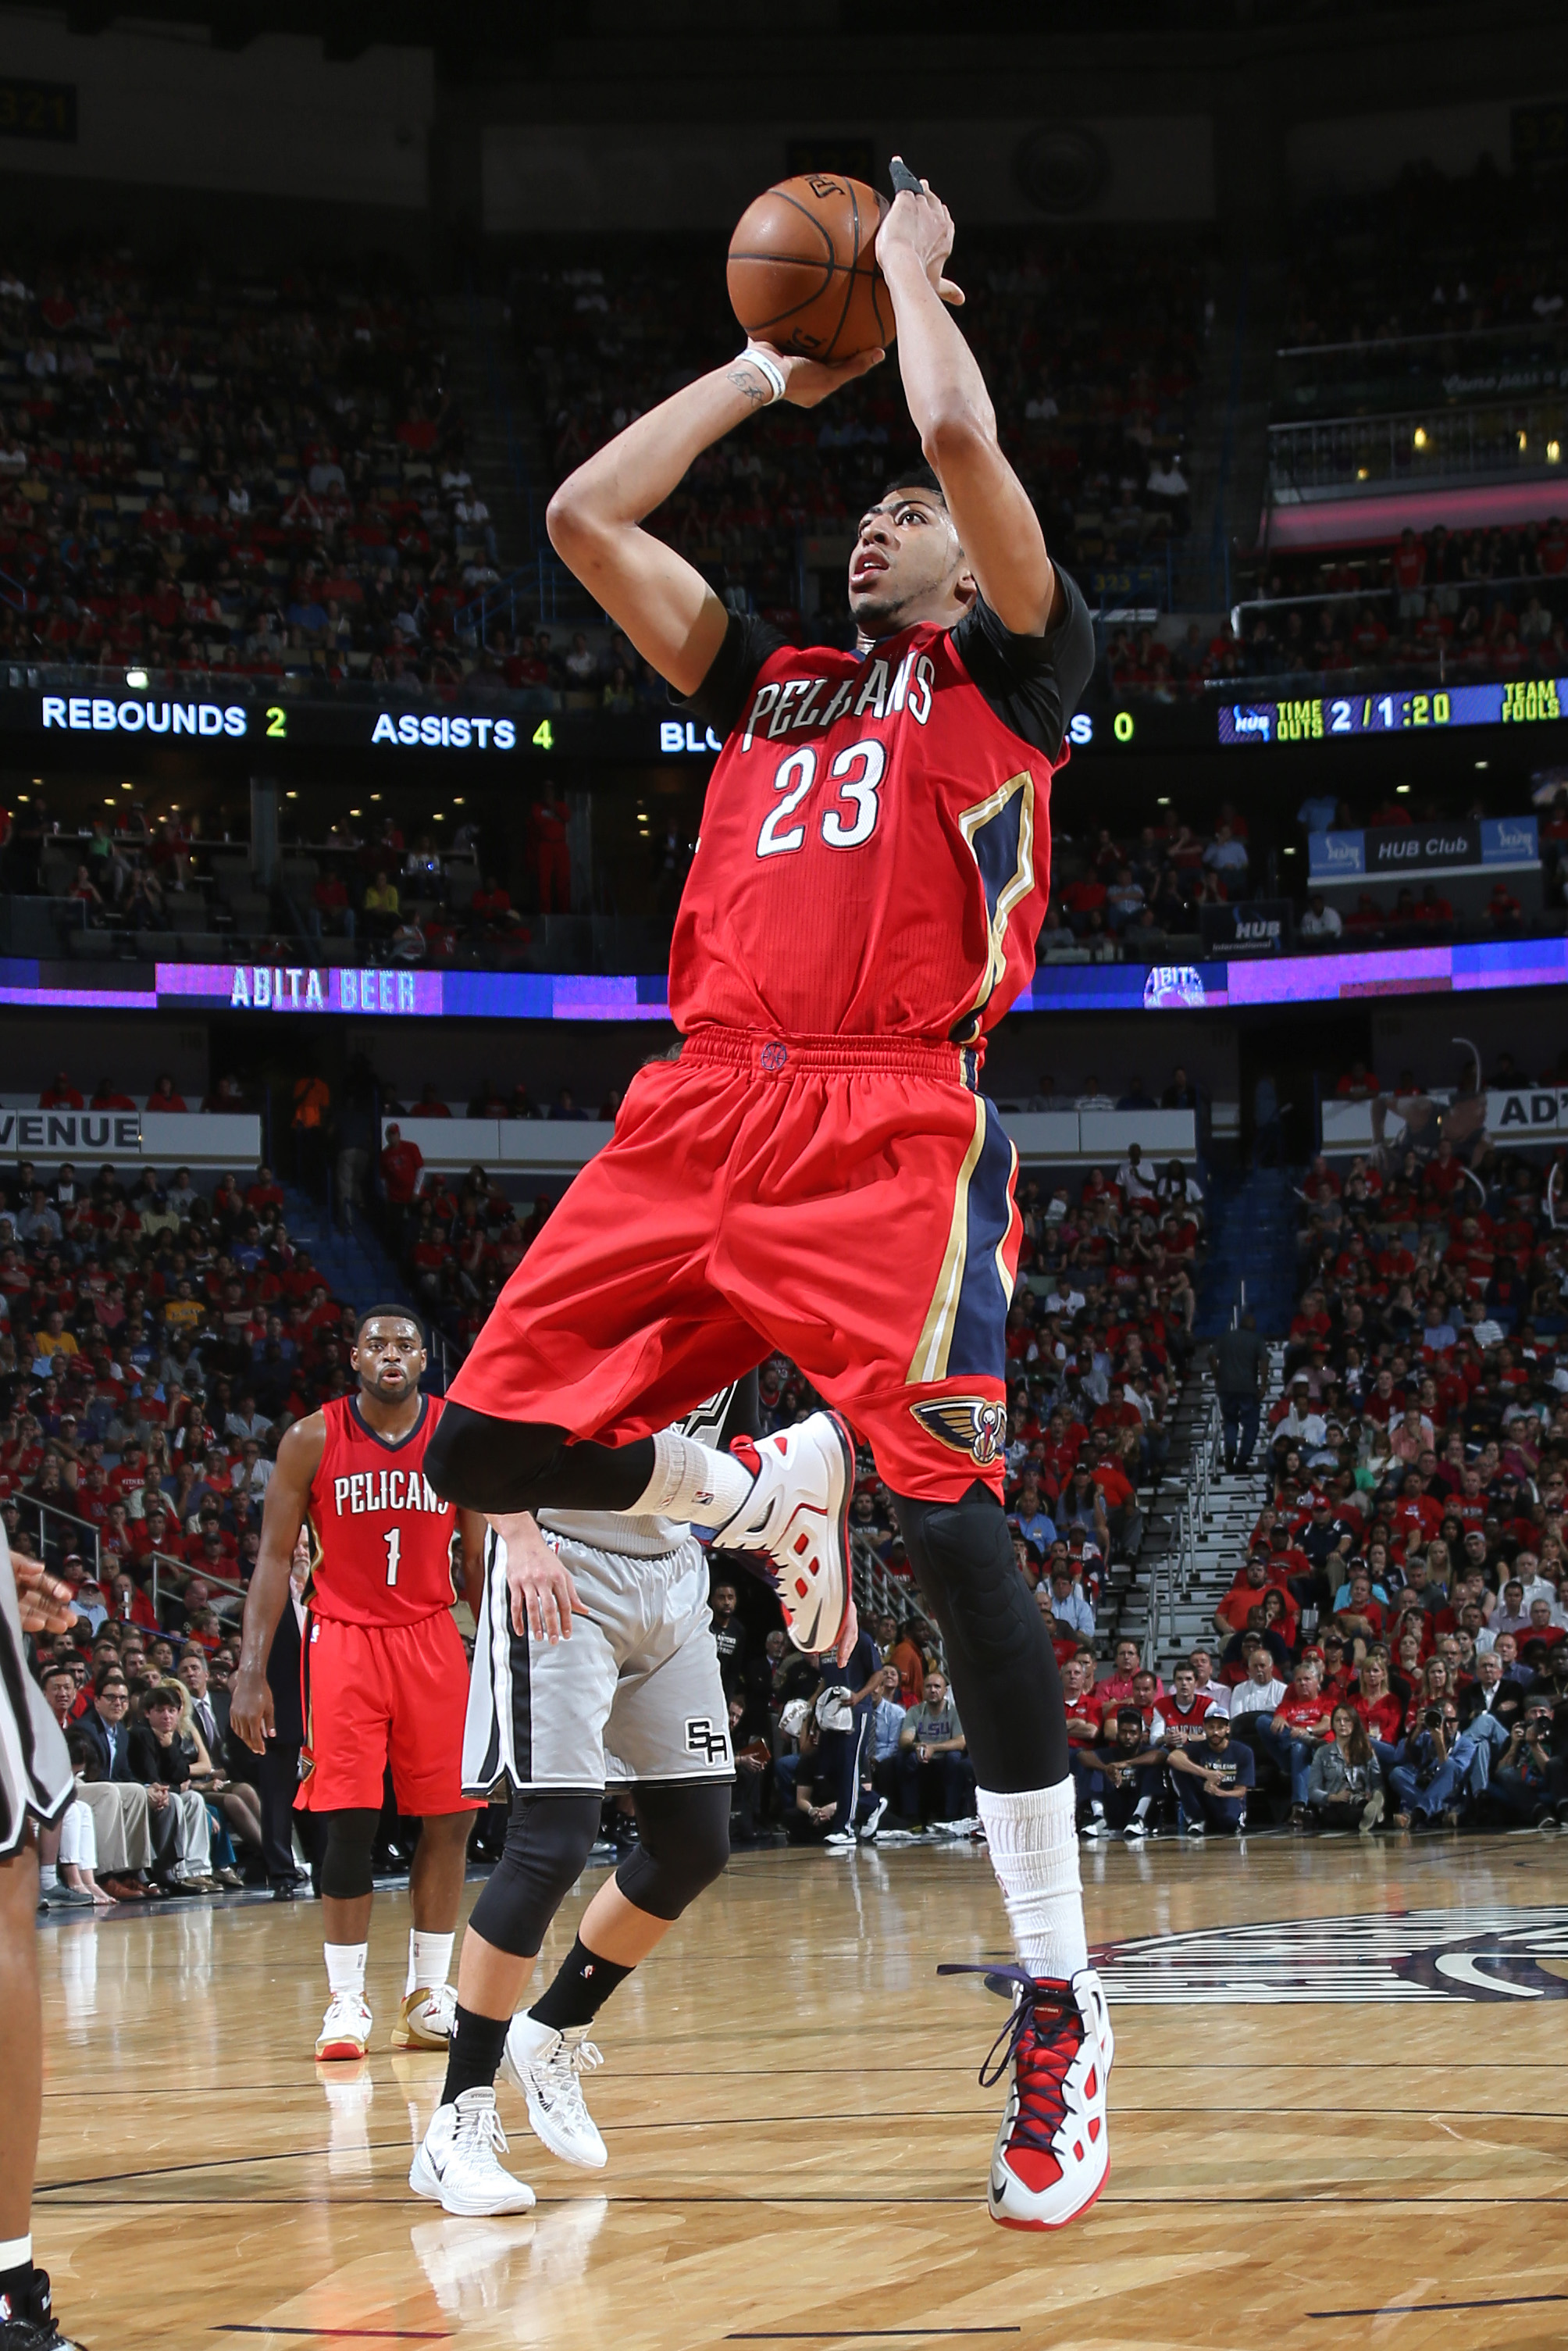 NEW ORLEANS, LA - APRIL 15: Anthony Davis #23 of the New Orleans Pelicans shoots against the San Antonio Spurs during the game on April 15, 2015 at Smoothie King Center in New Orleans, Louisiana. (Photo by Layne Murdoch Jr,/NBAE via Getty Images)